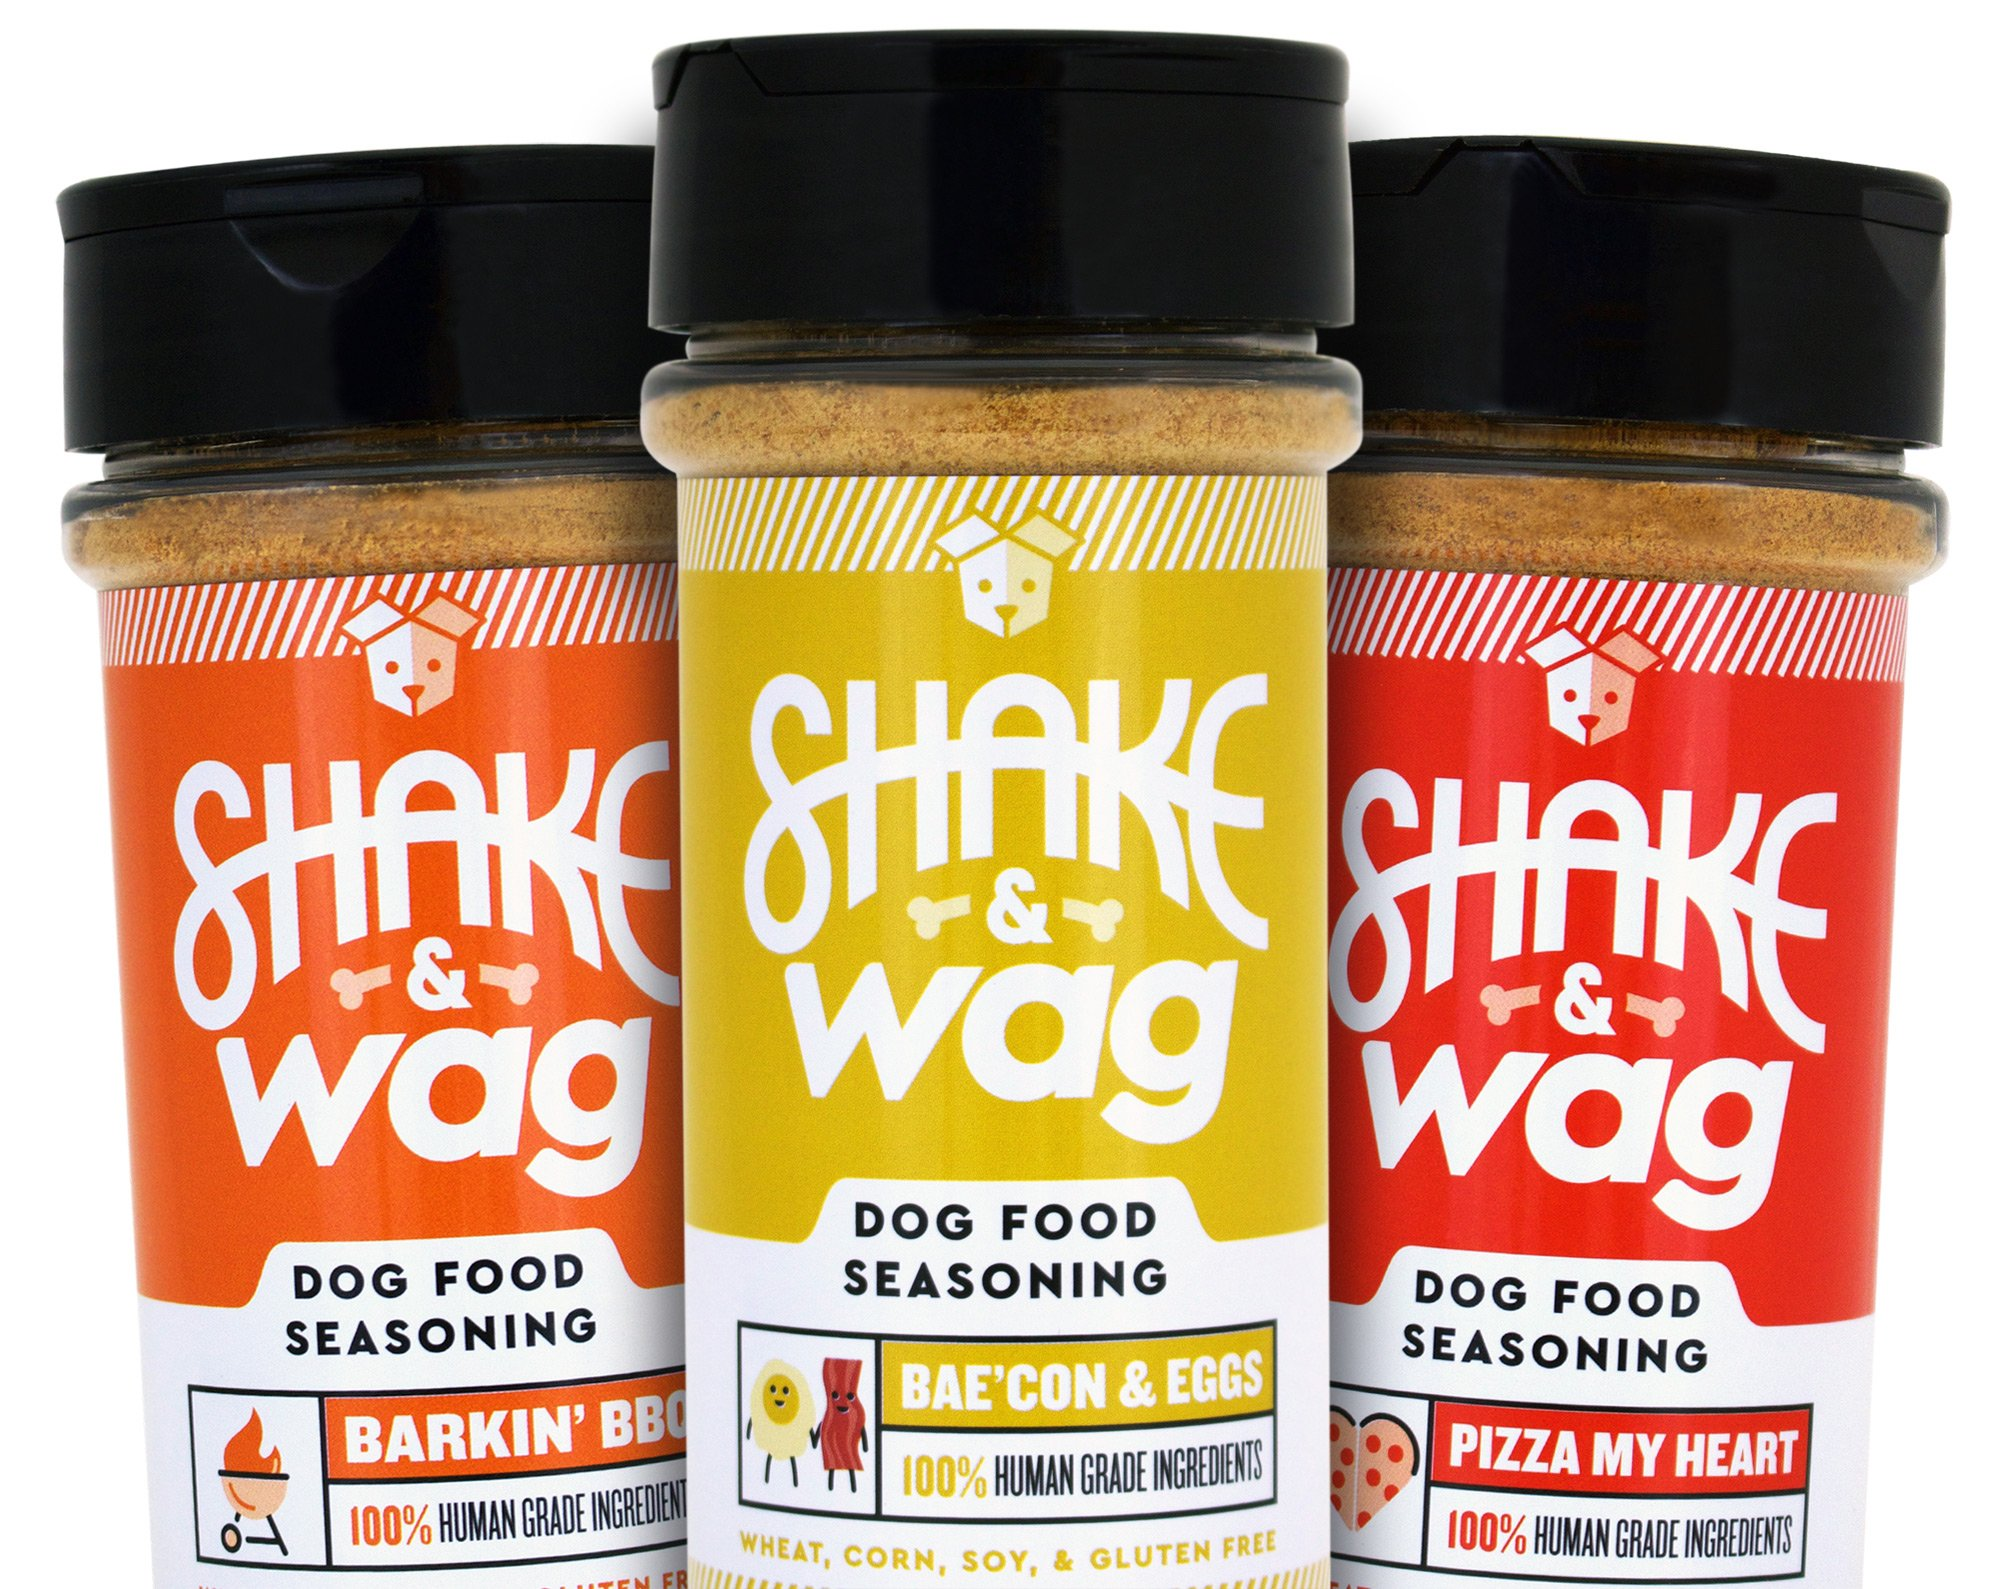 Shake & Wag Dog Food Seasoning Powder - Human Grade, Gluten Free Topper, Flavor Enhancer, and Gravy For Dog Food - USA Made (3 Bottle Set - Bacon/Eggs, BBQ, Pizza)